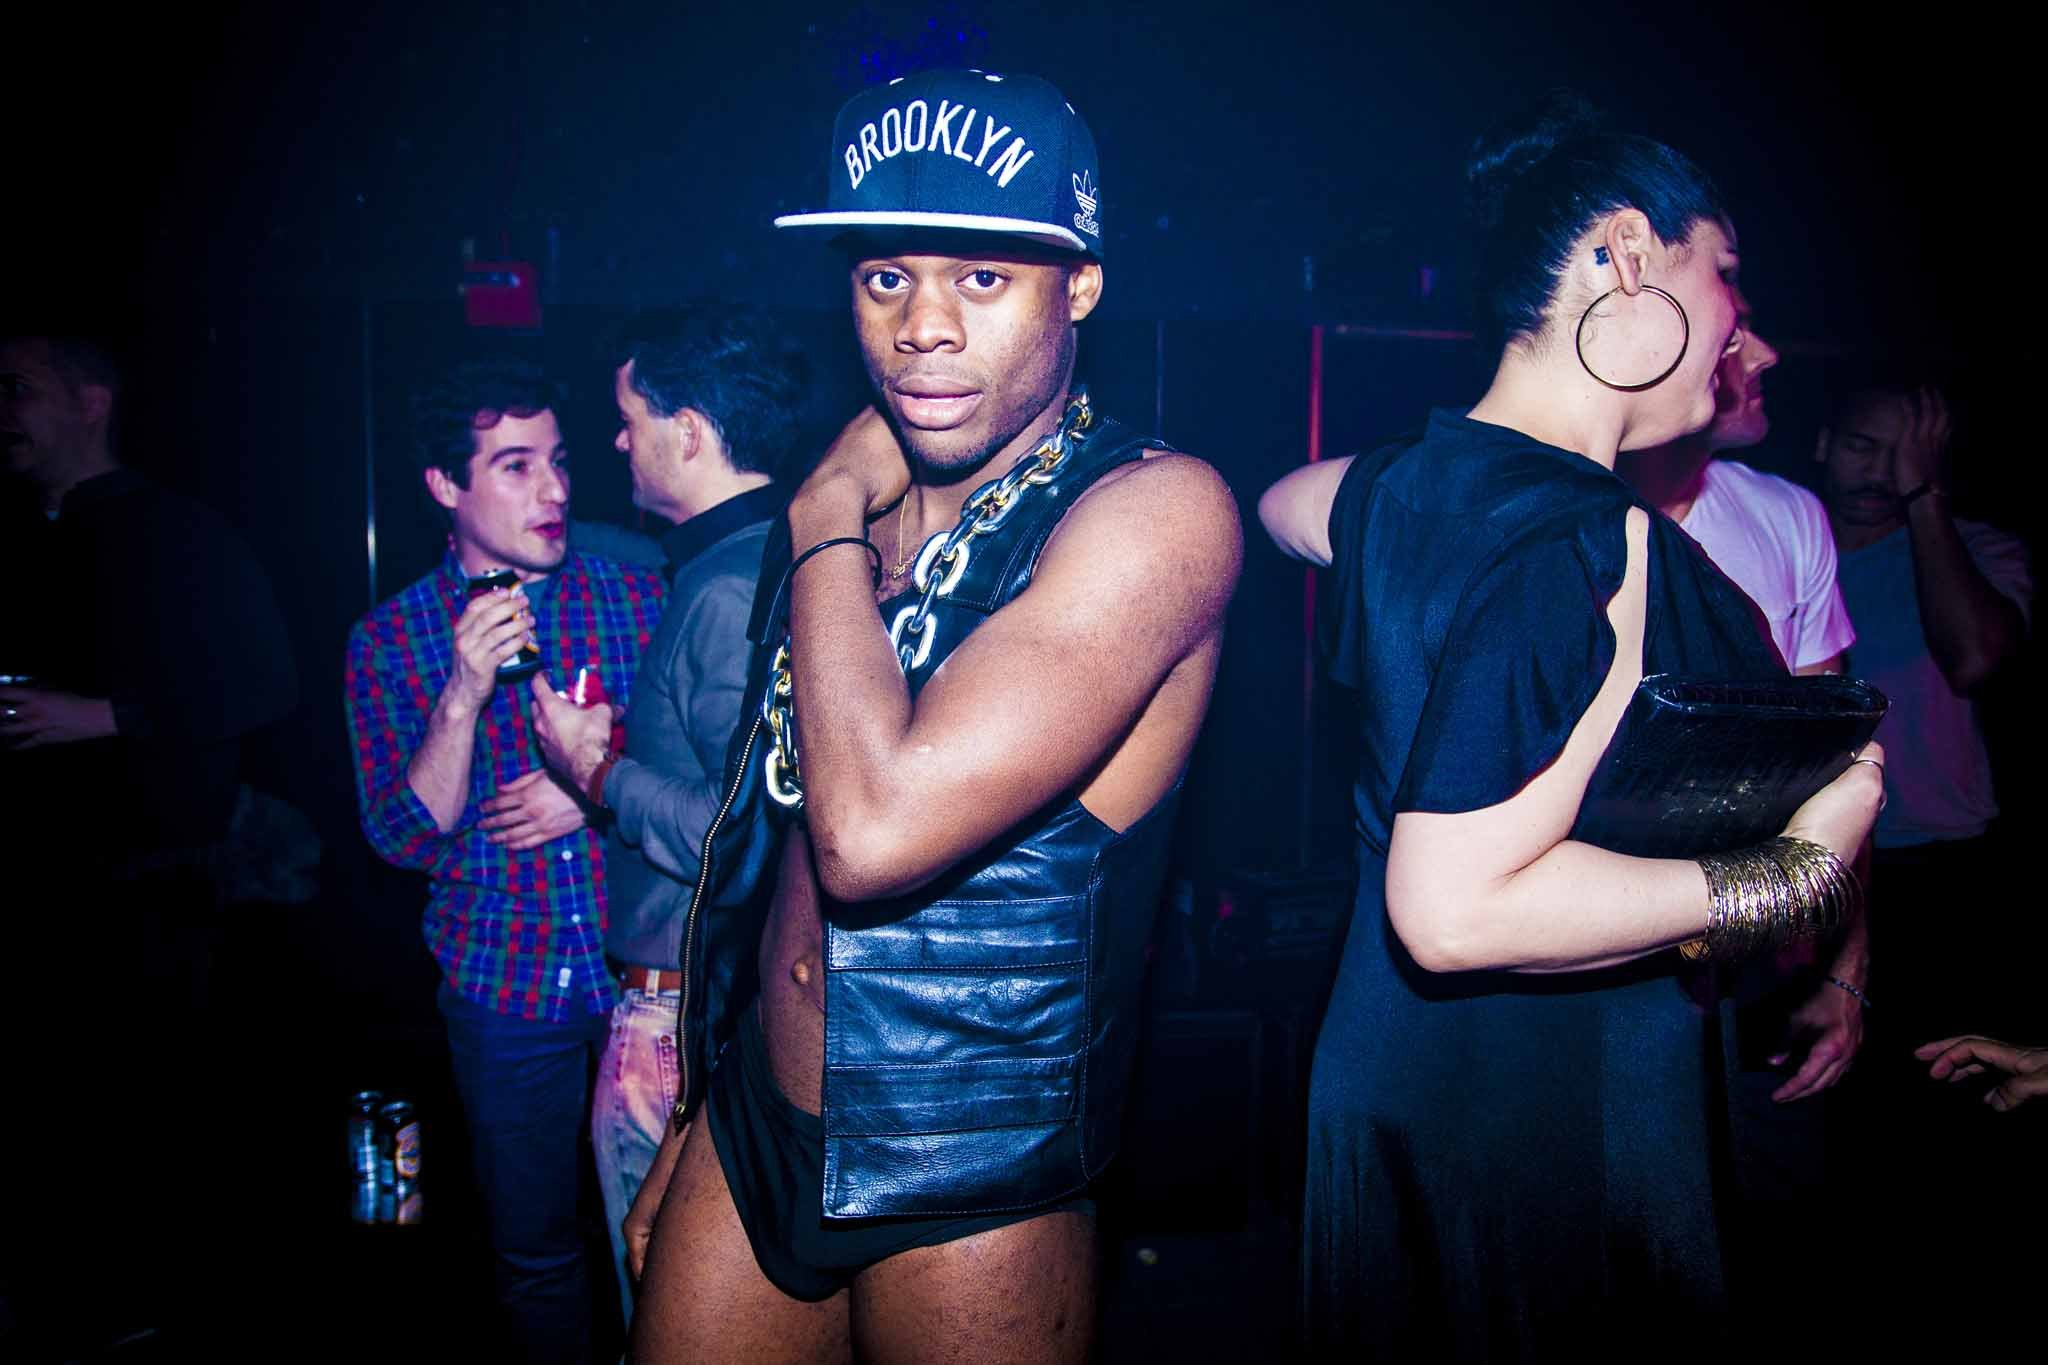 The best gay nightlife in New York